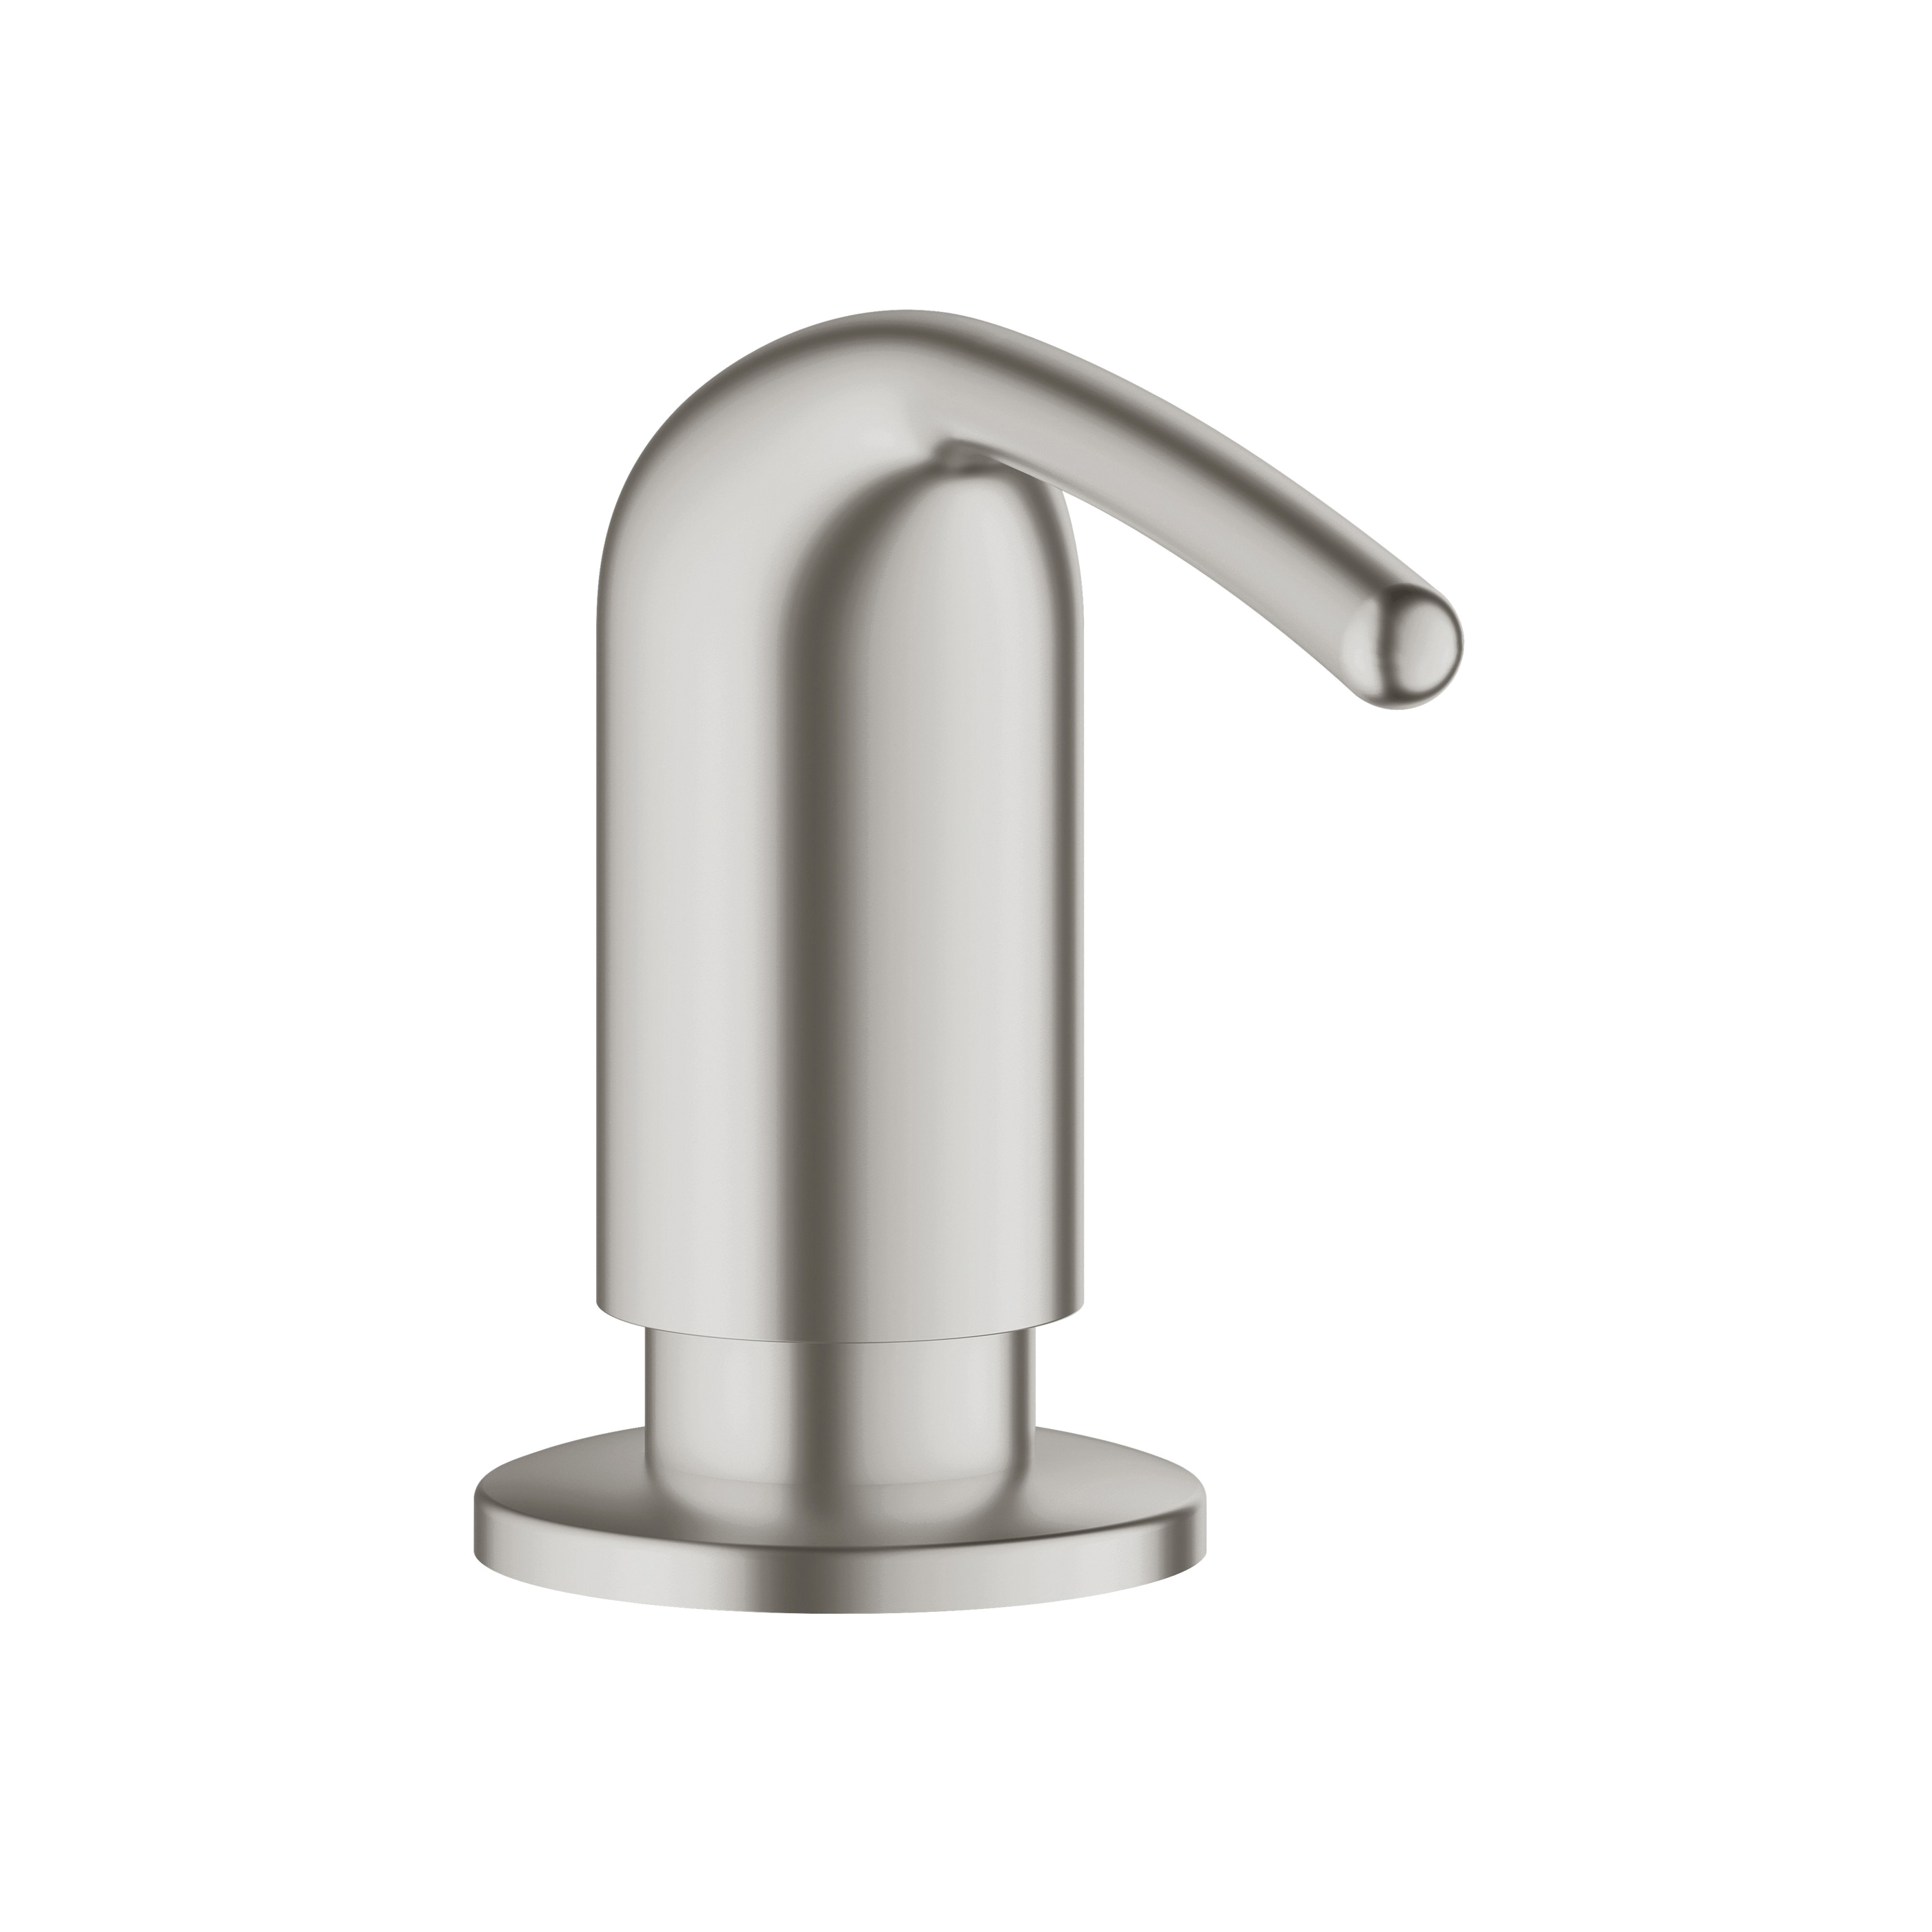 GROHE 40553DC0 Ladylux Zedra Soap Dispenser, 15 oz, Deck Mount, Brass, SuperSteel